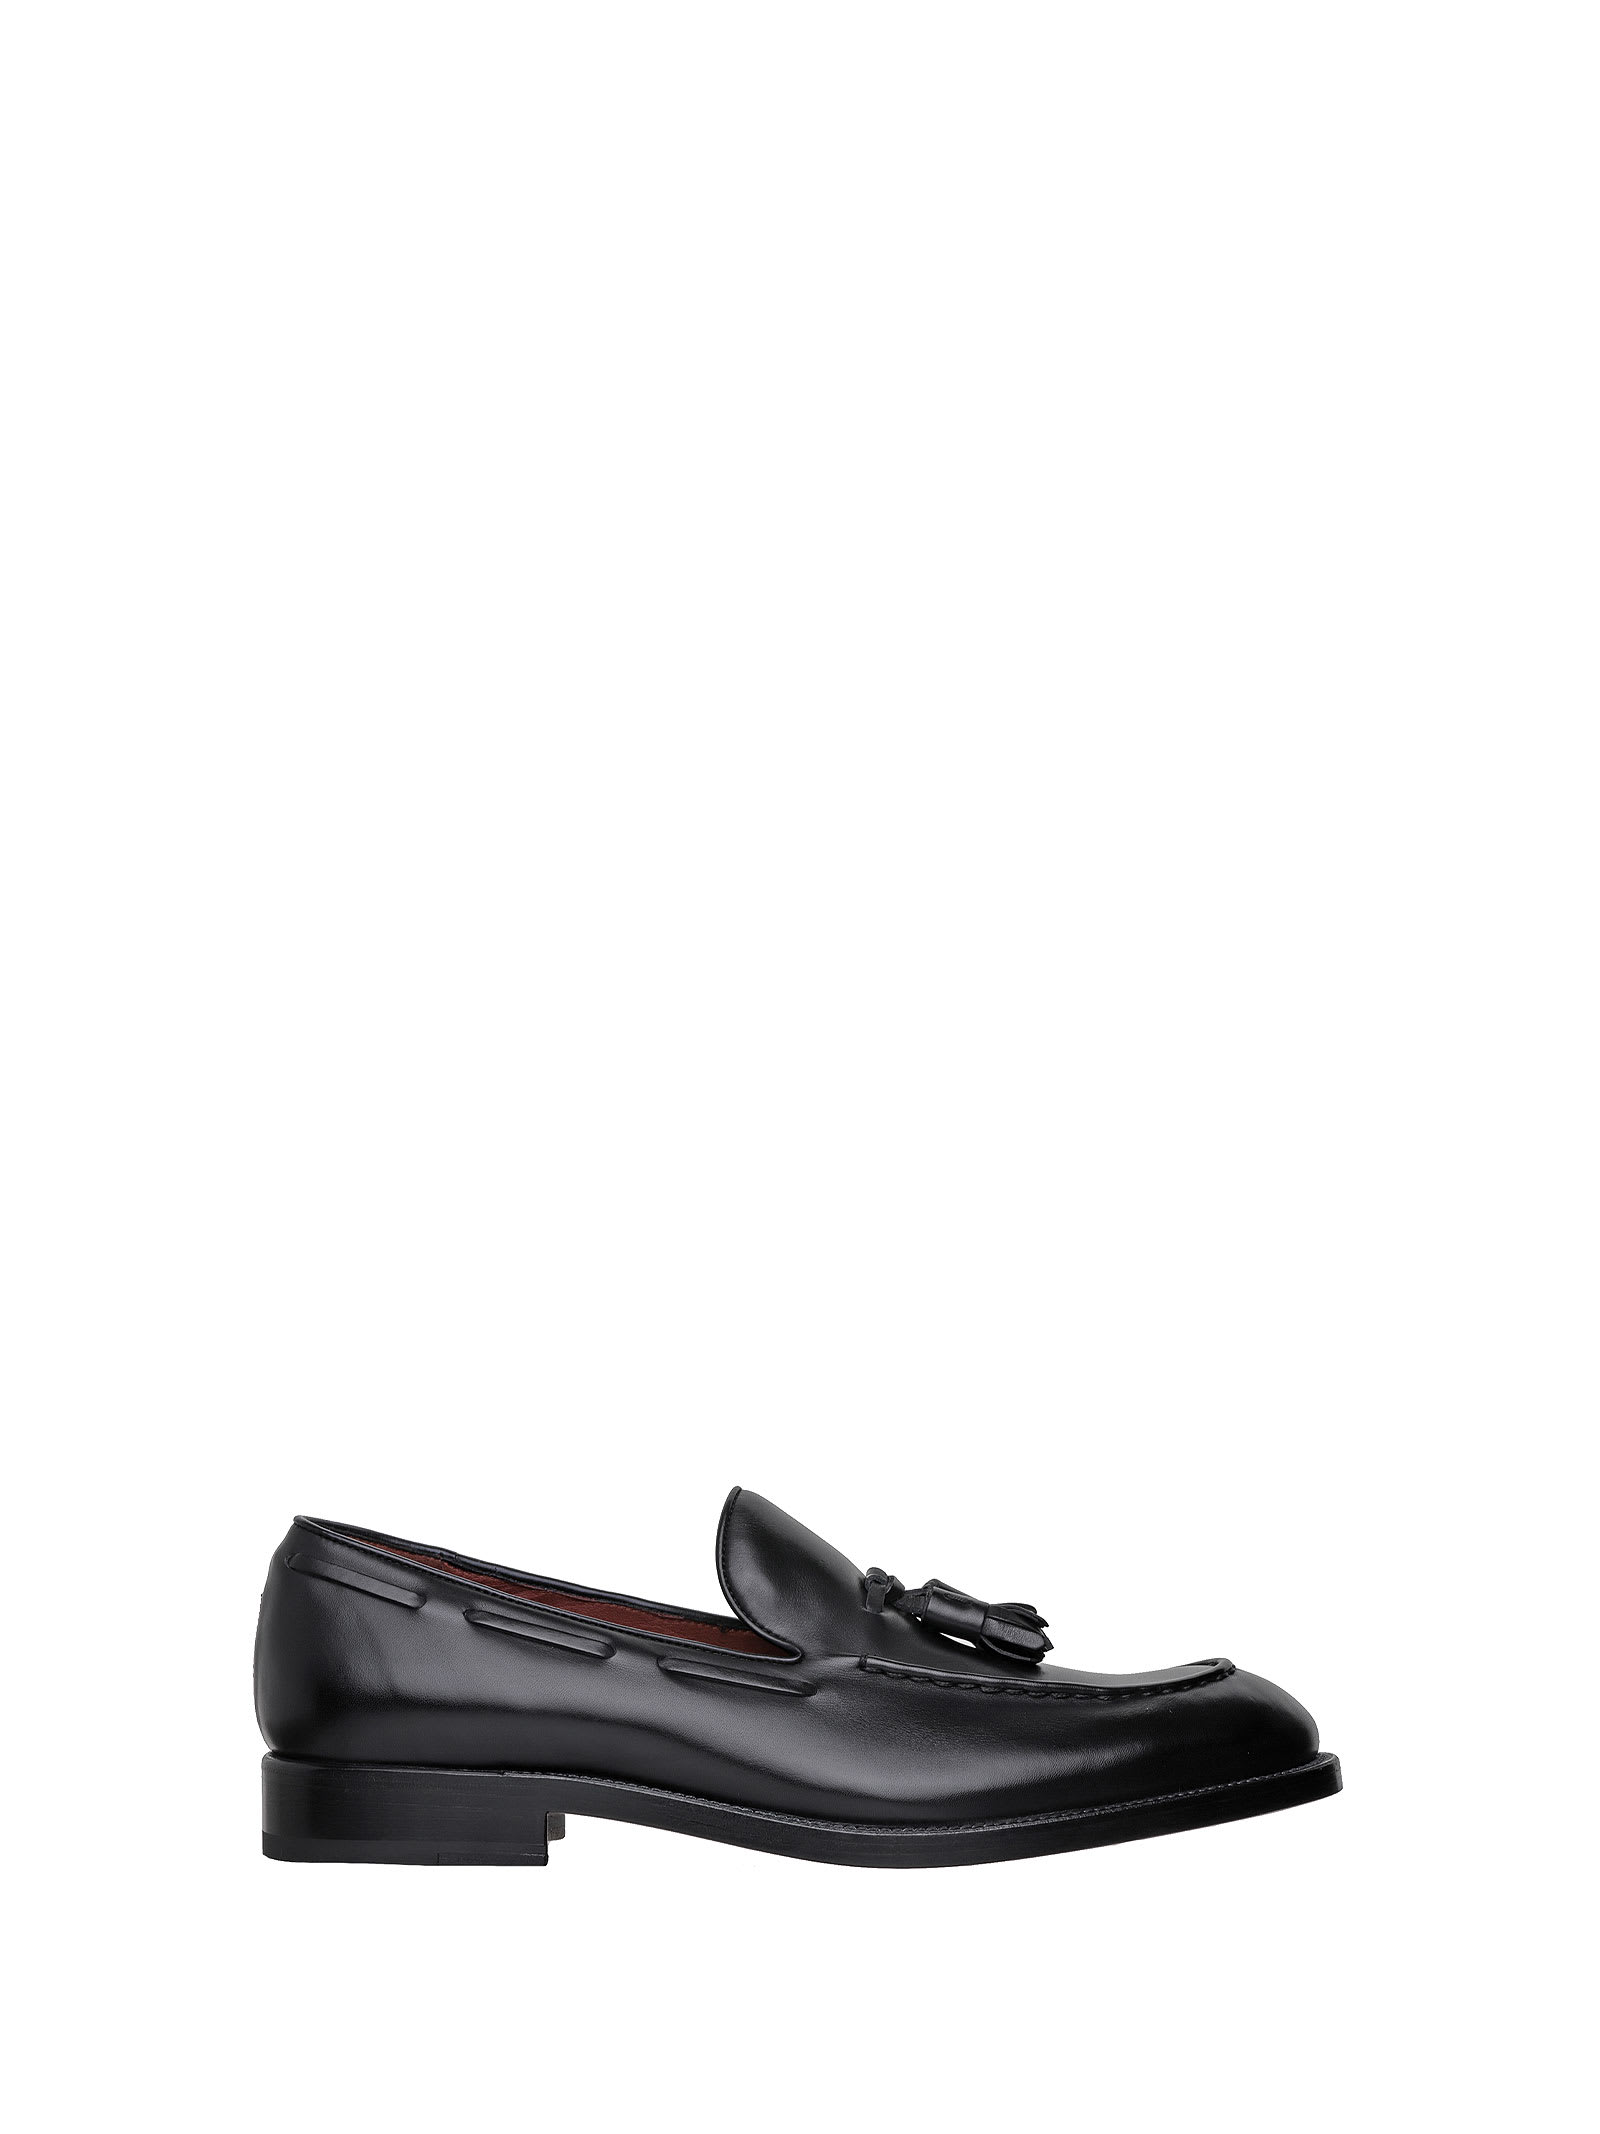 Fratelli Rossetti Fratelli Rossetti Leather Loafers